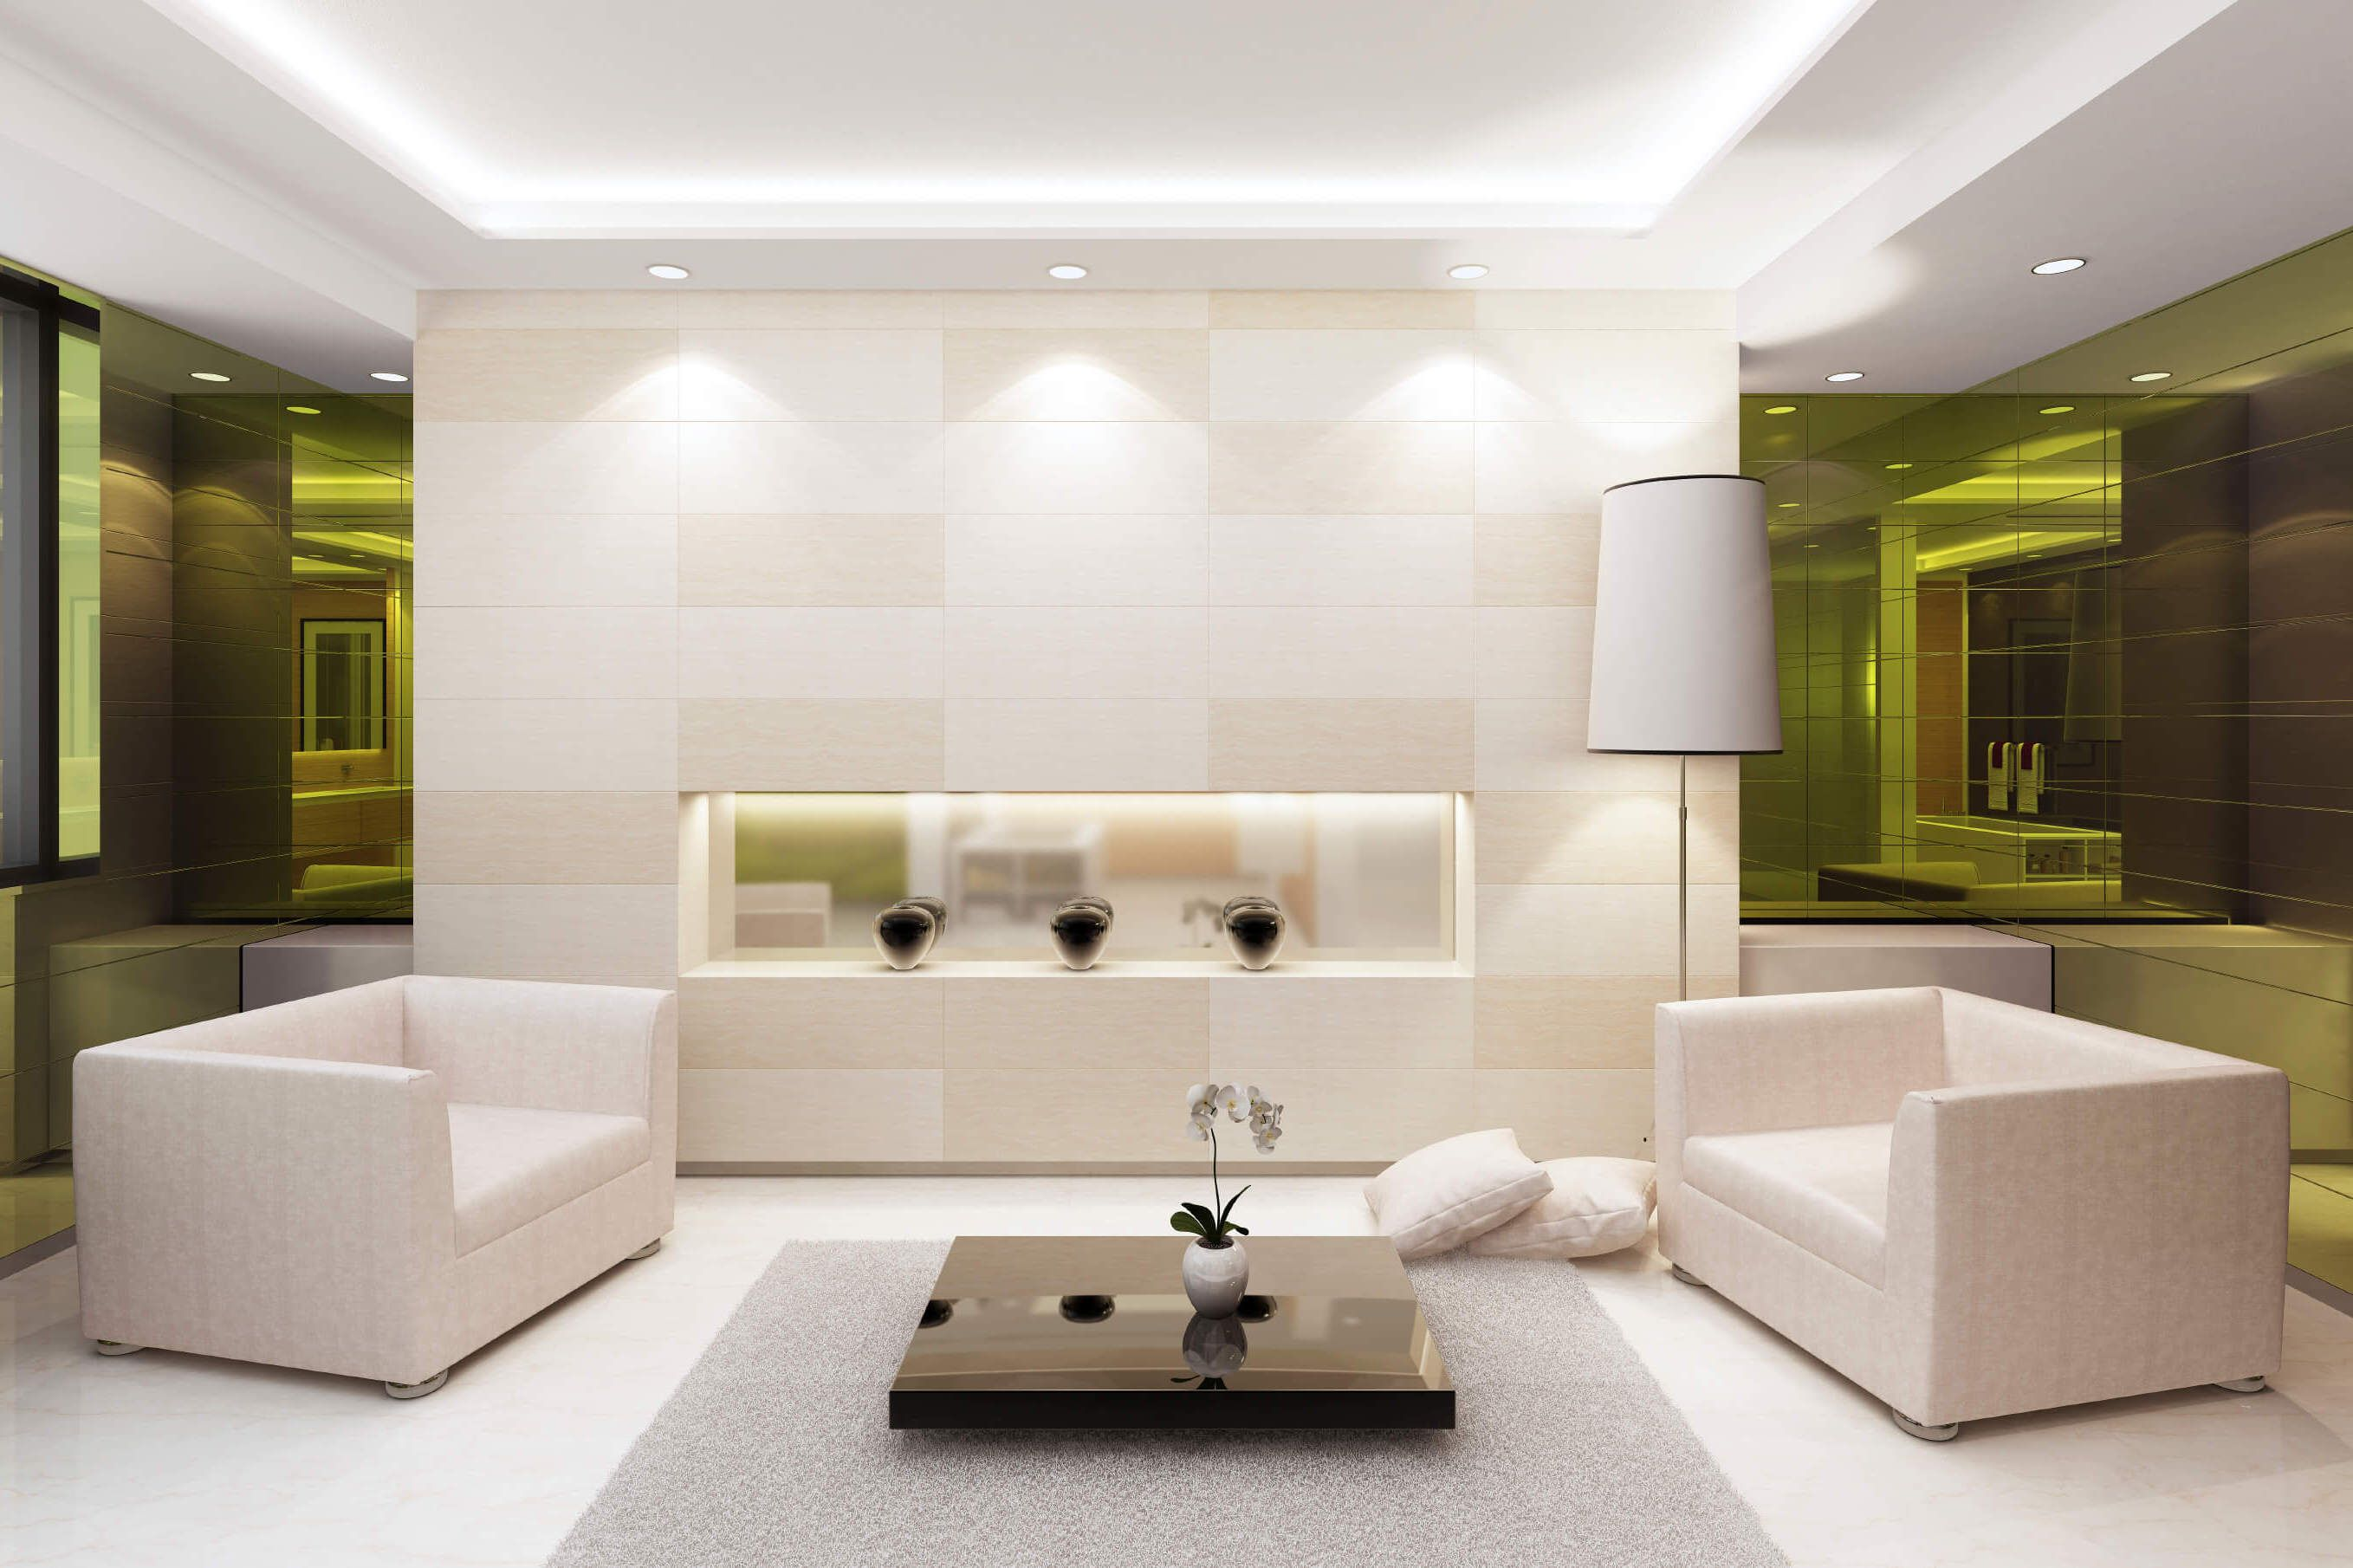 living room designs ideas on a budget with decorative light and ...